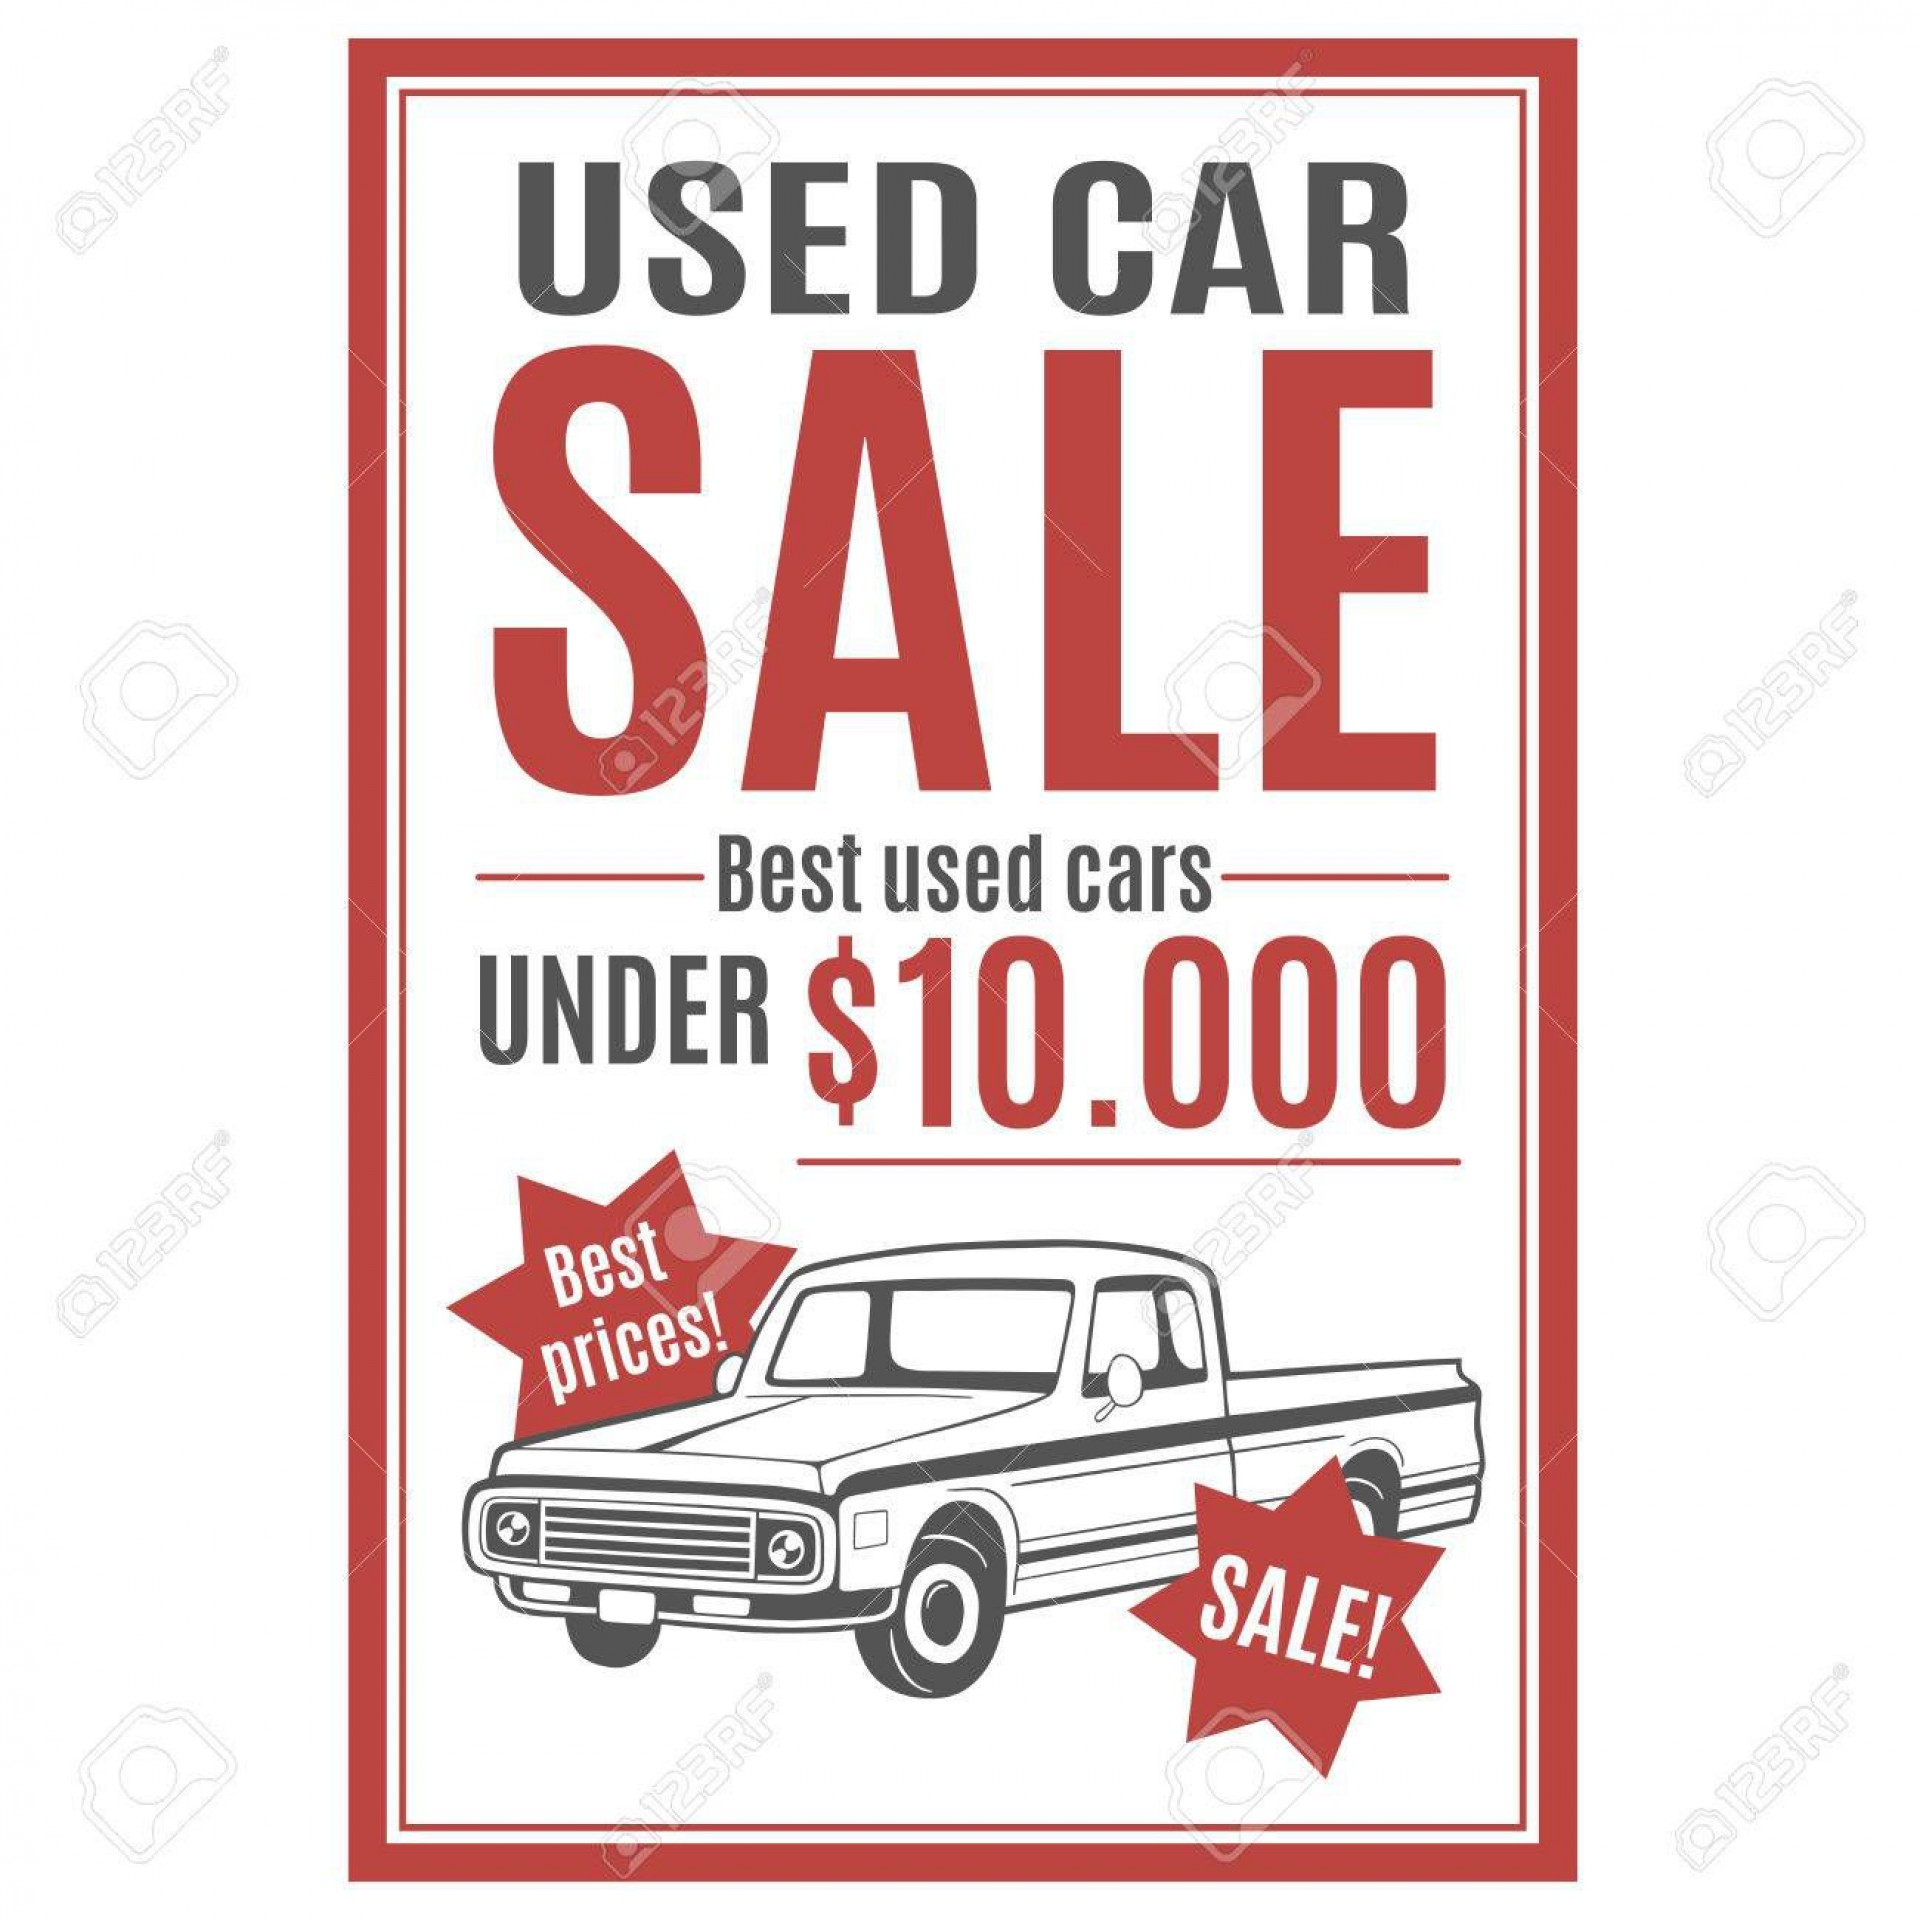 002 Unusual Car For Sale Template Design  Sign Word Bill Of Uk1920